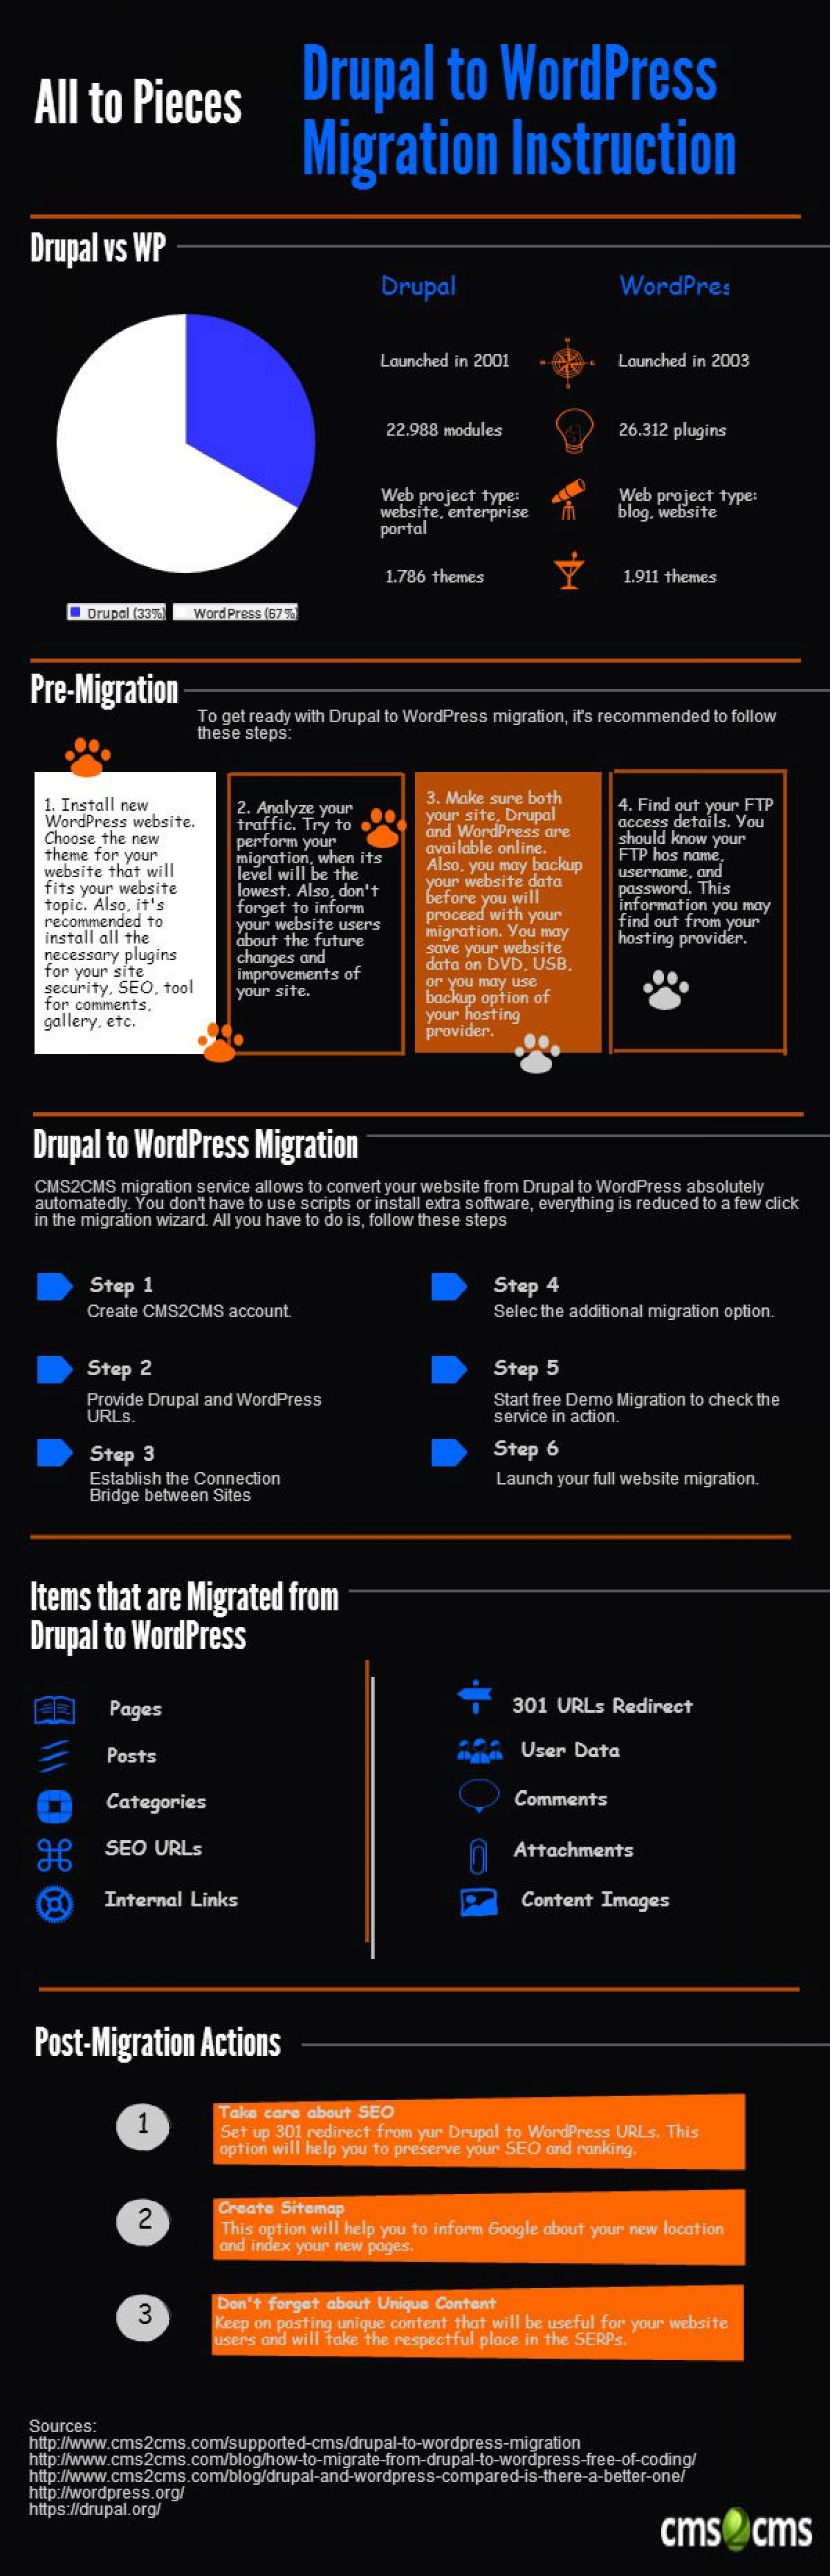 Drupal to WordPress Migration: All the Way Guidance Infographic